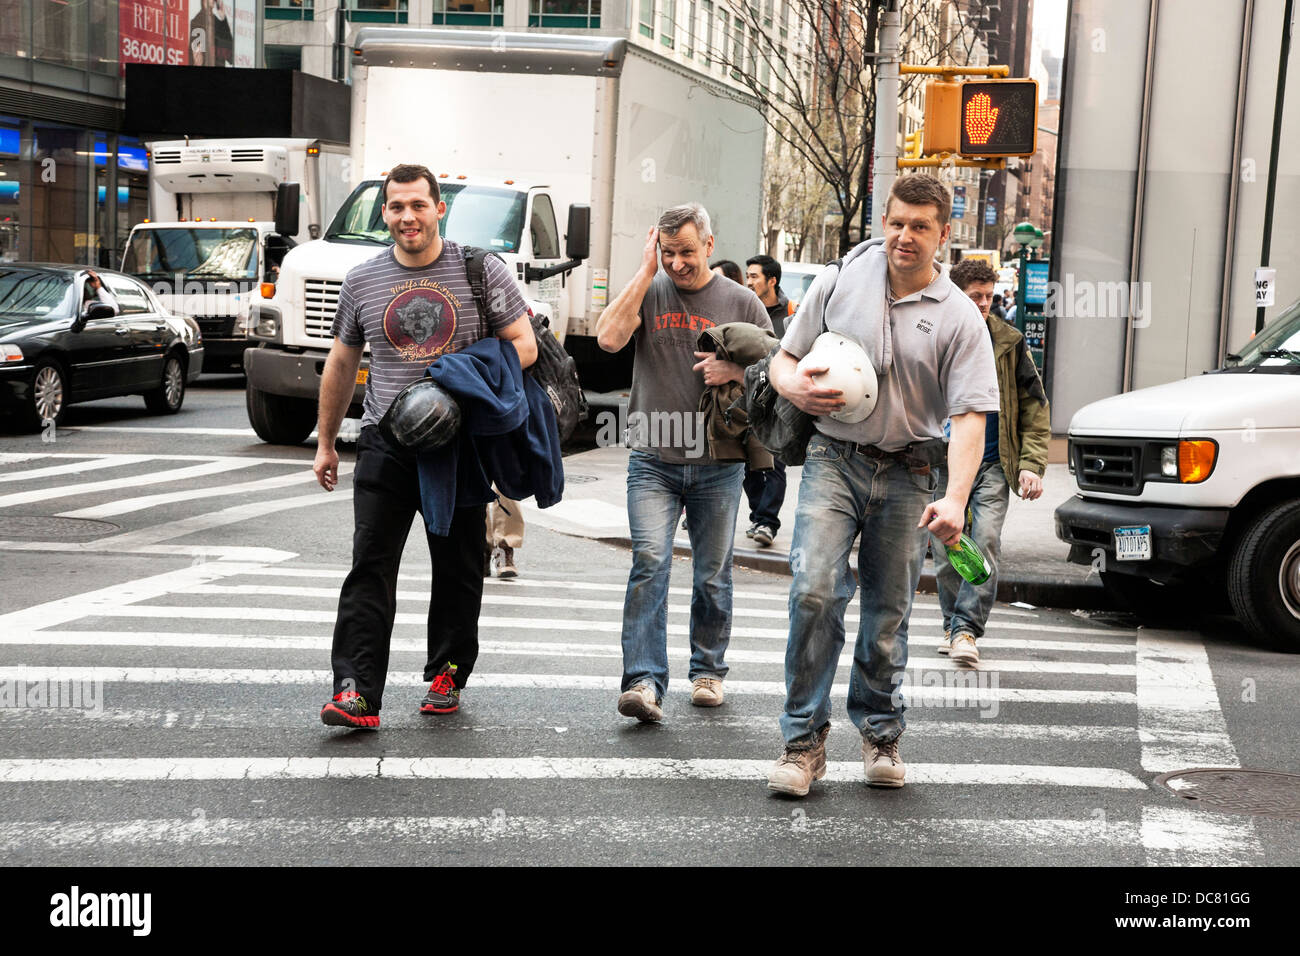 3 good natured construction workers in dusty work boots & carrying hard hats cross Broadway after work in midtown - Stock Image